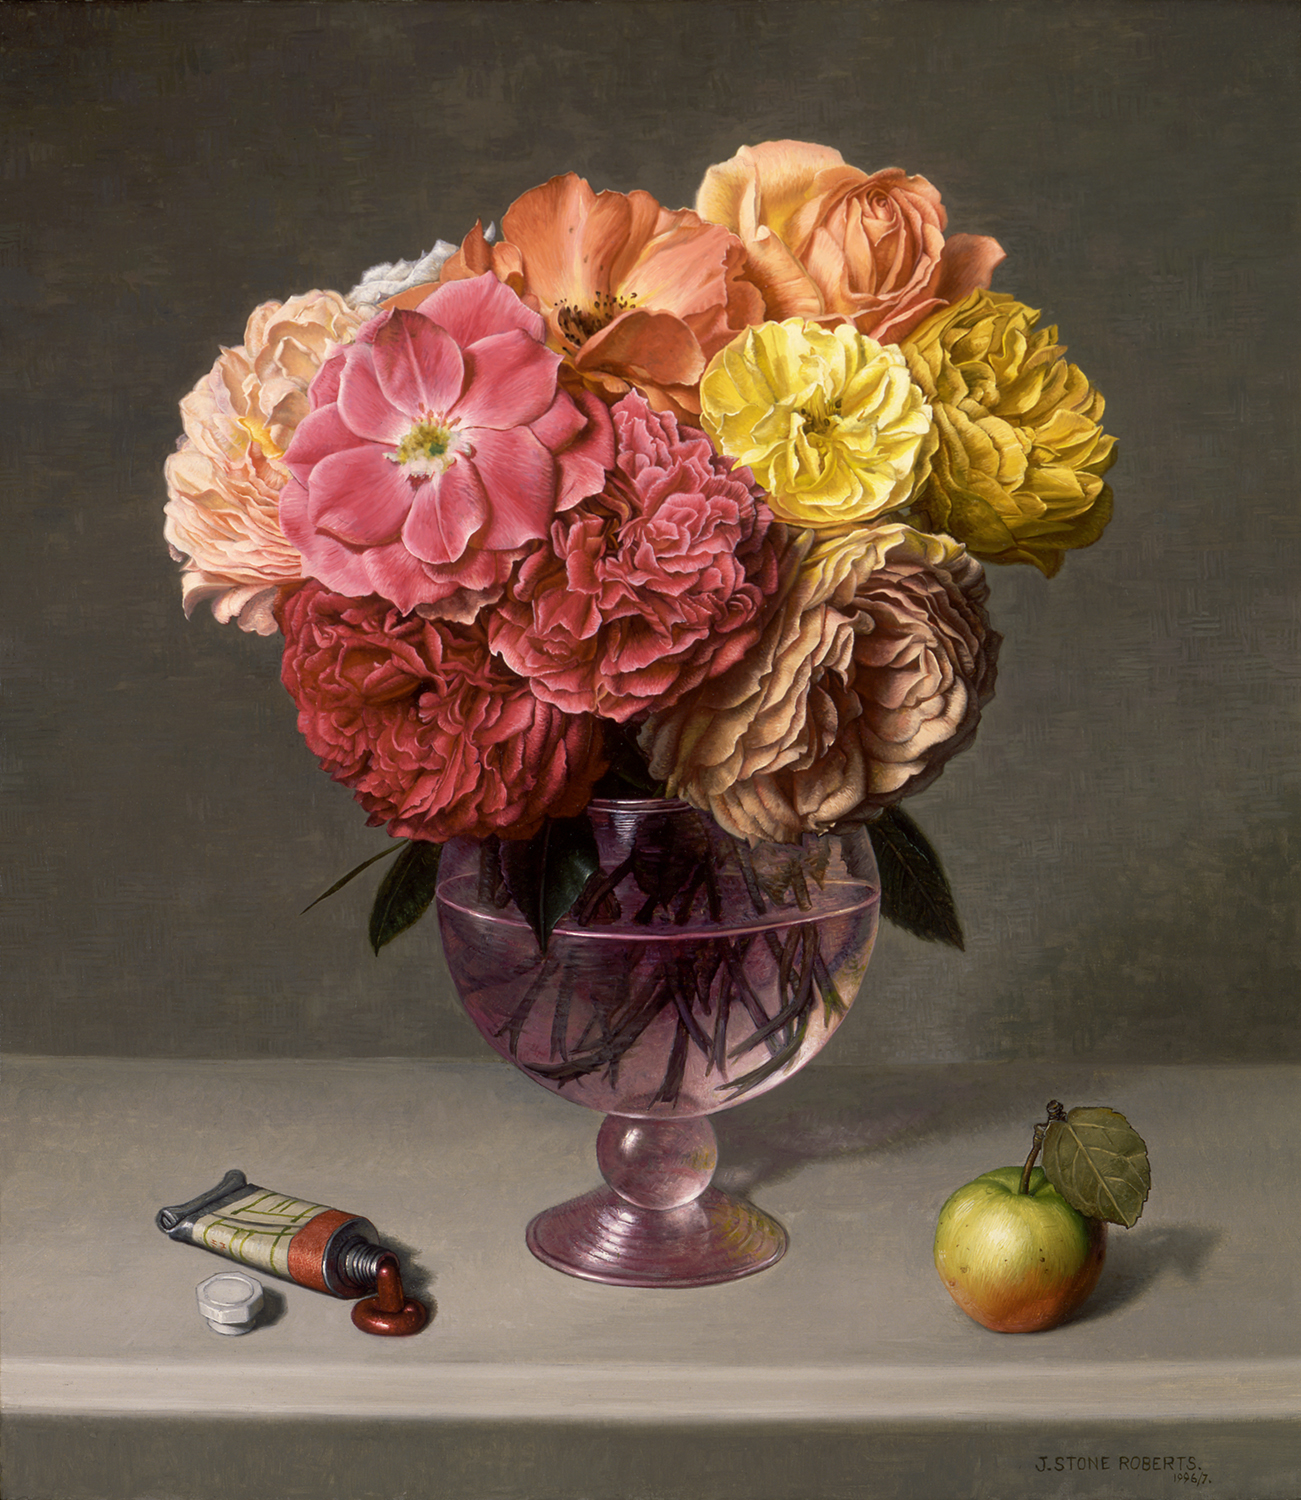 ROSES, APPLE AND PAINT TUBE (1996/97)